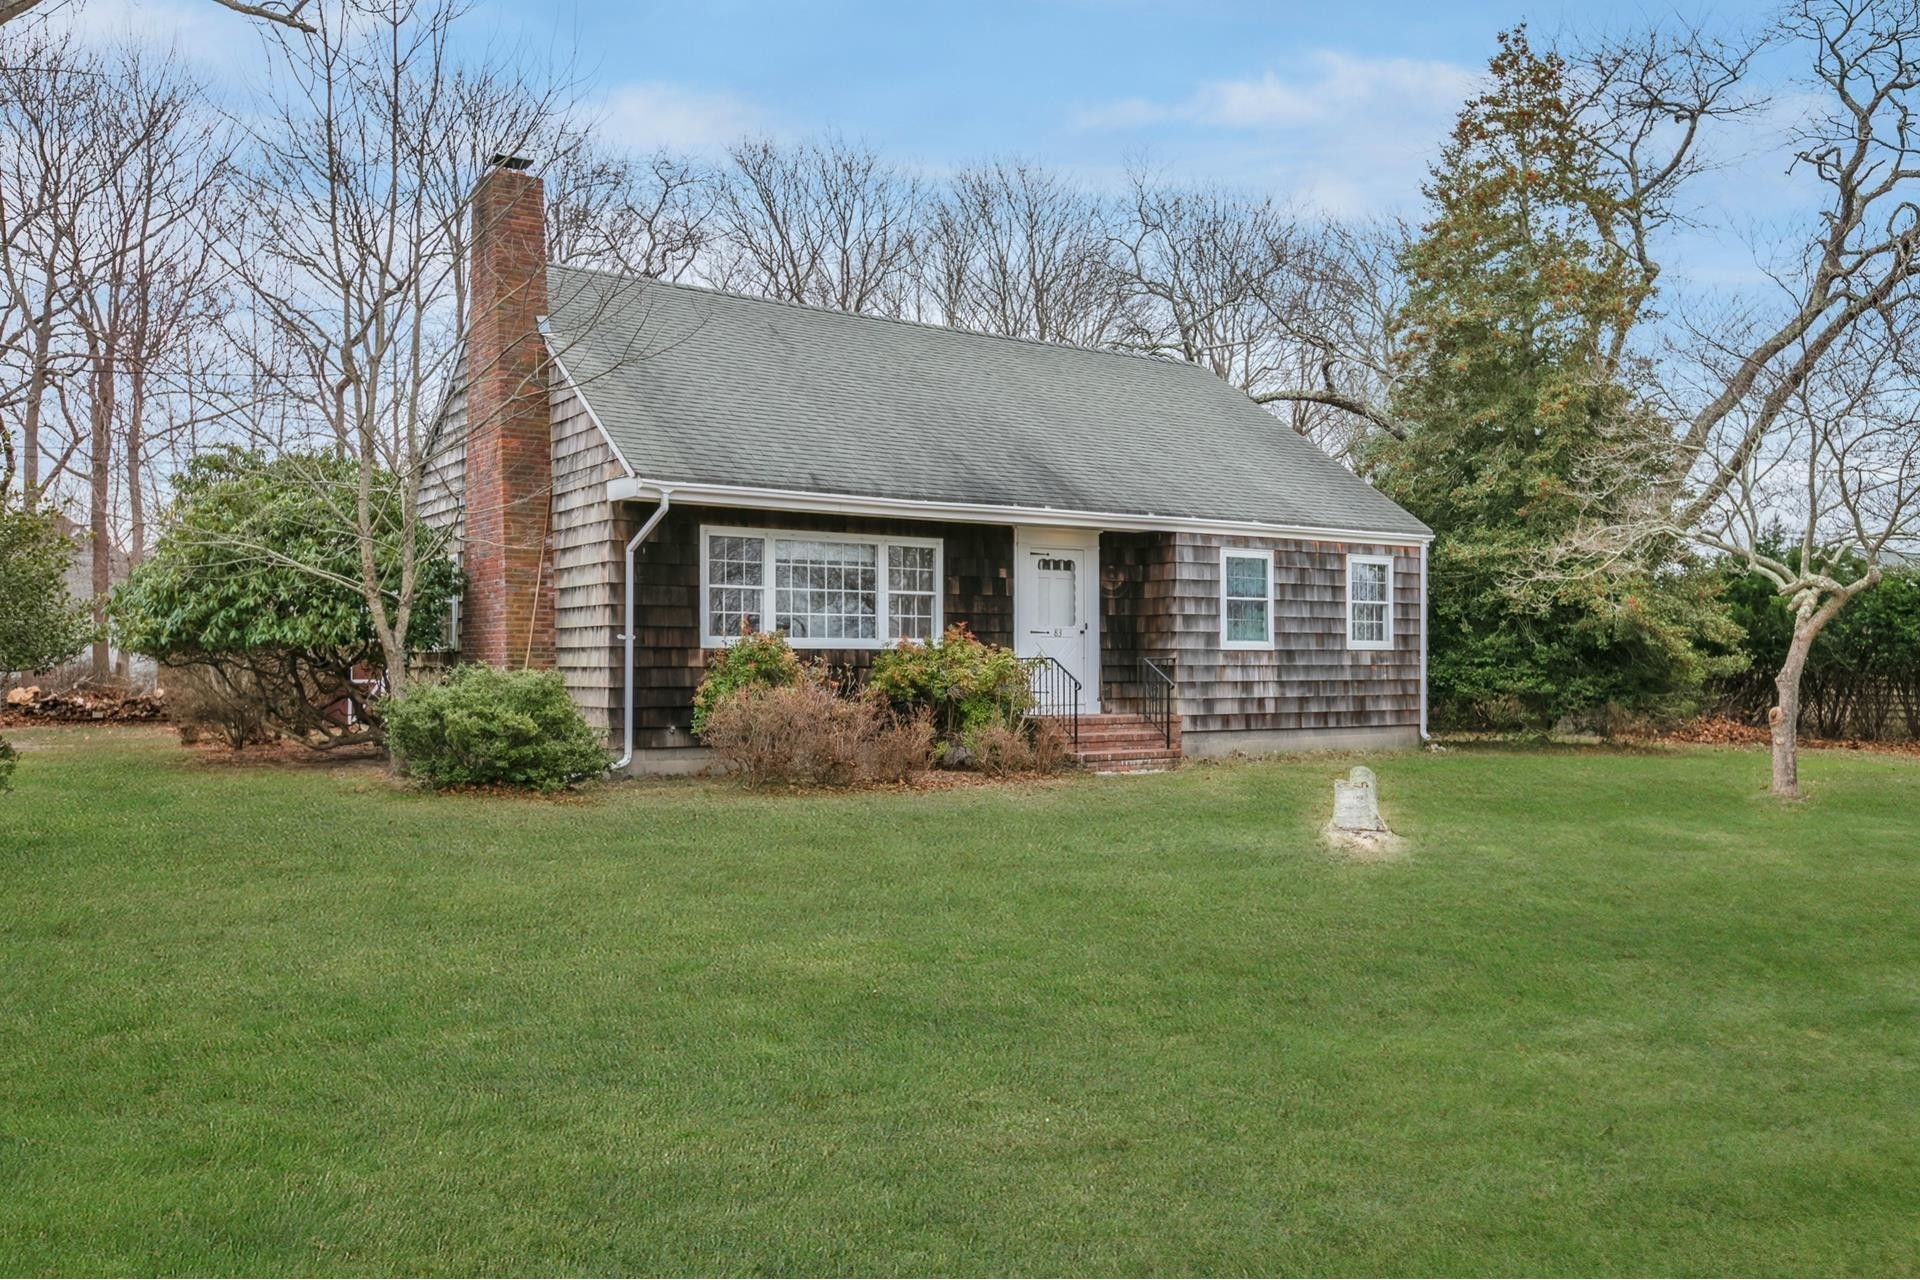 Property at East Moriches, NY 11940